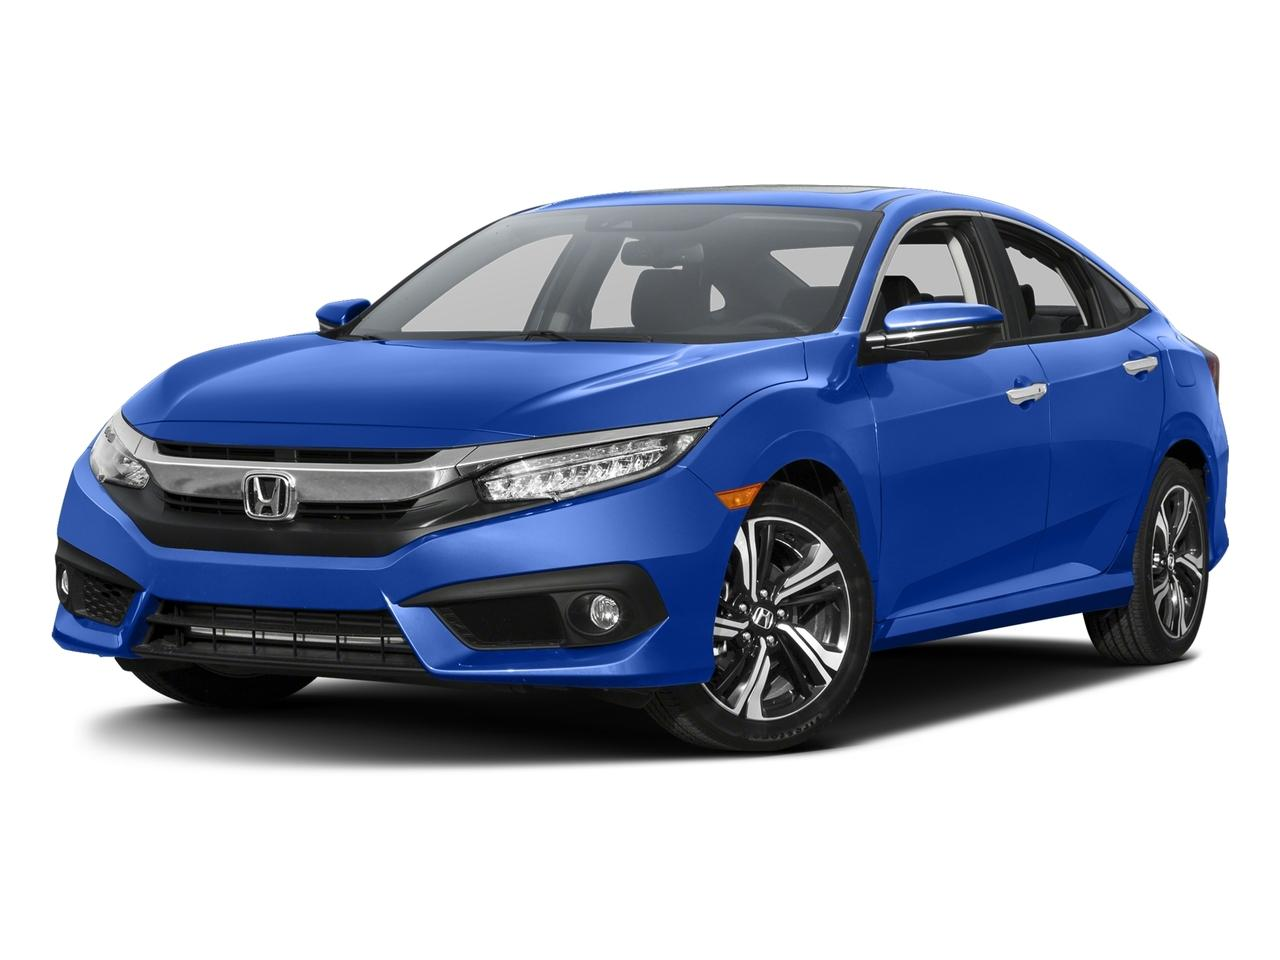 2016 Honda Civic Sedan Vehicle Photo in Paramus, NJ 07652